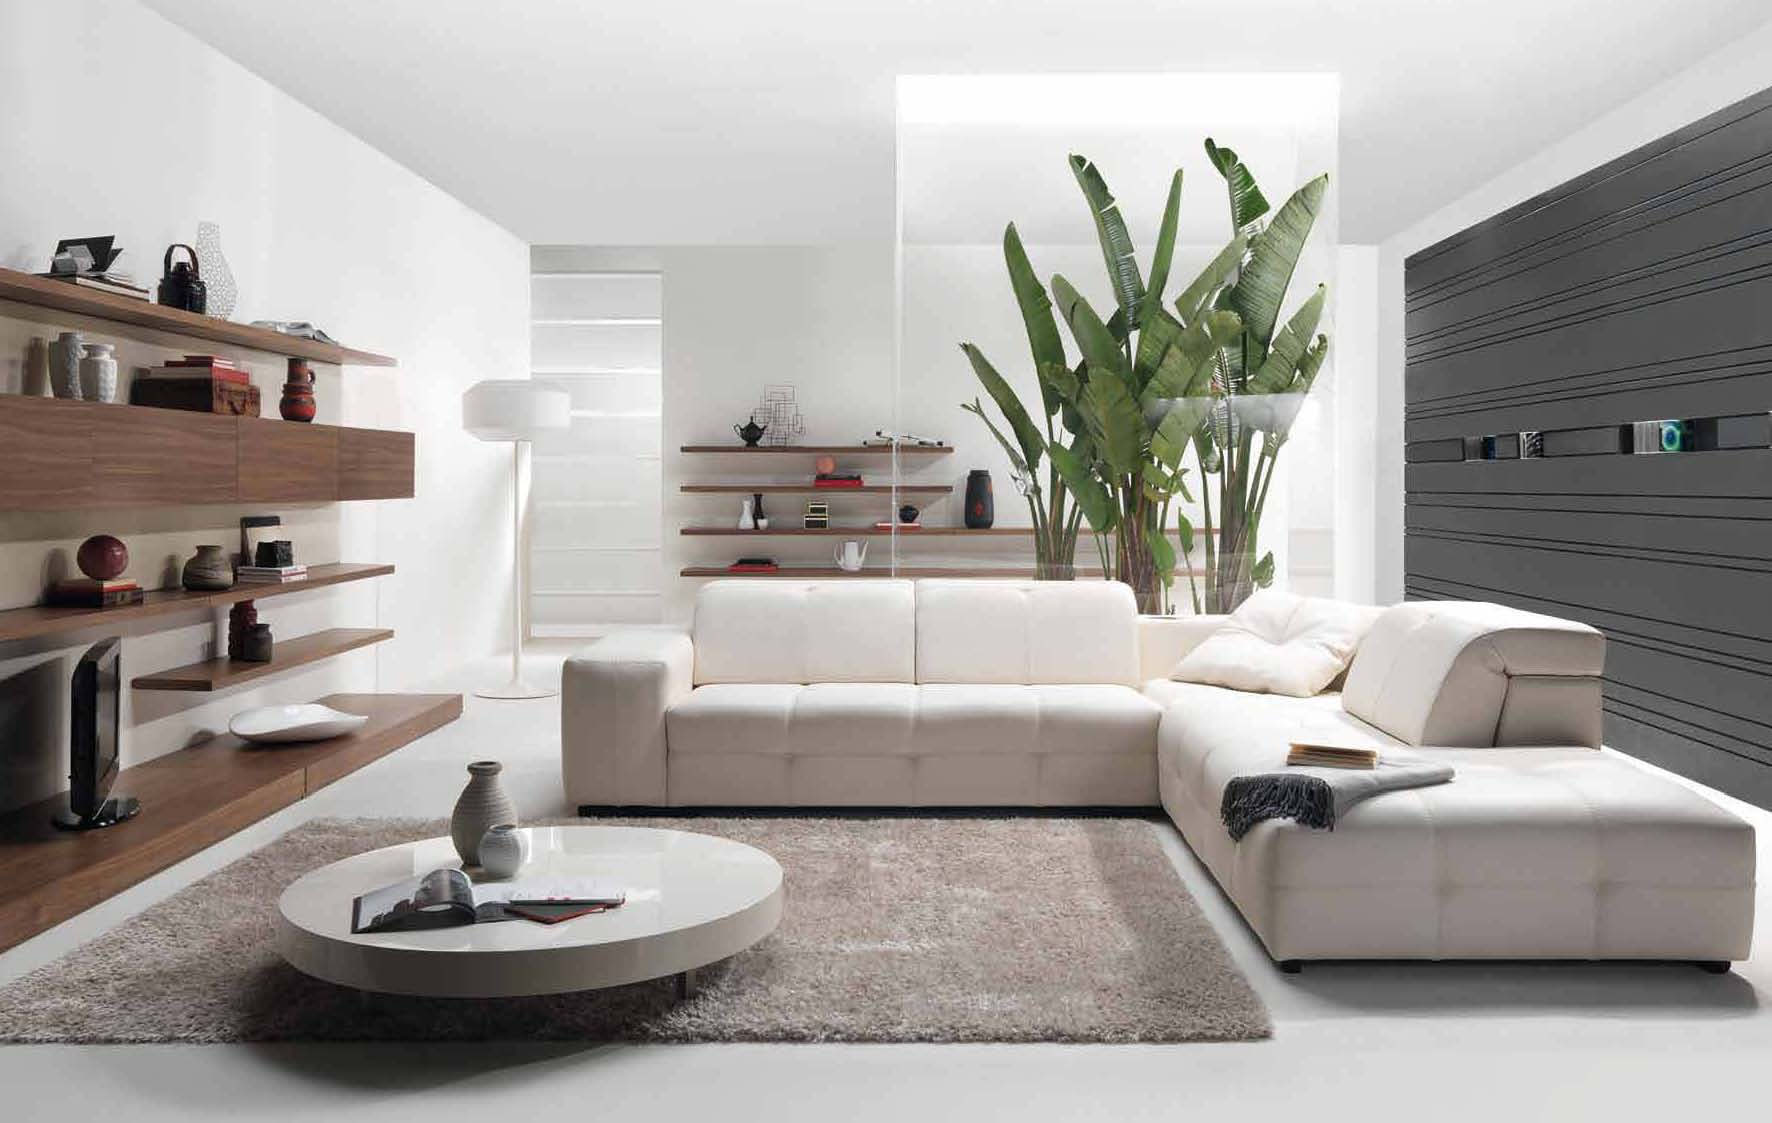 16 Stunning White Living Room Ideas for Any Styles - Reverb